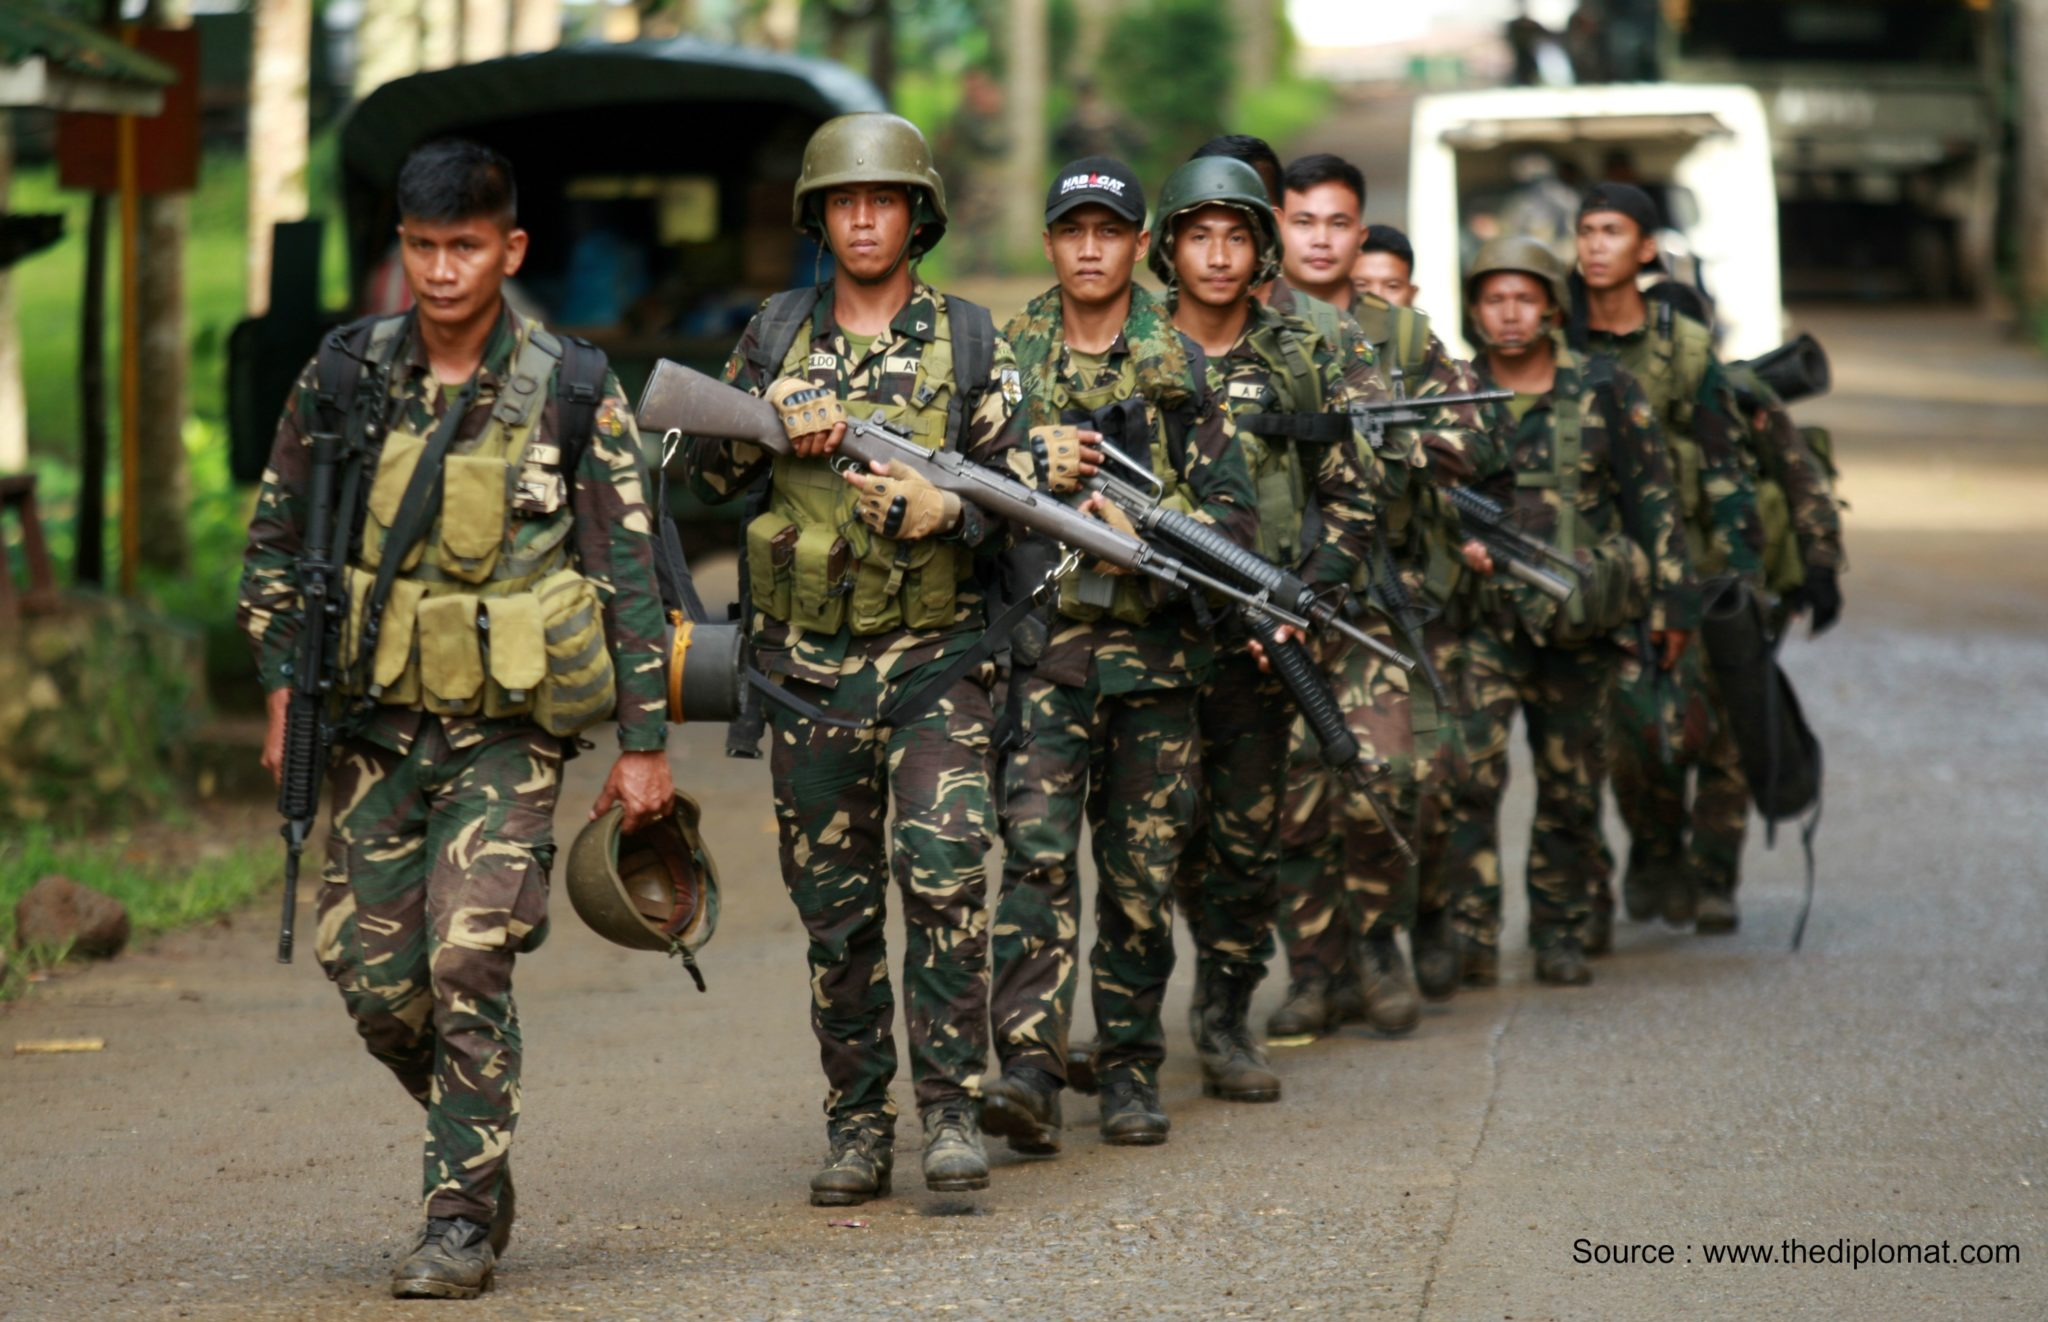 martial law in the philippines Philippines: martial law declared as islamic state jihadis storm city and battle national army in mindanao this is a global war, and of the most curious type imaginable: no one in authority wants to admit that.